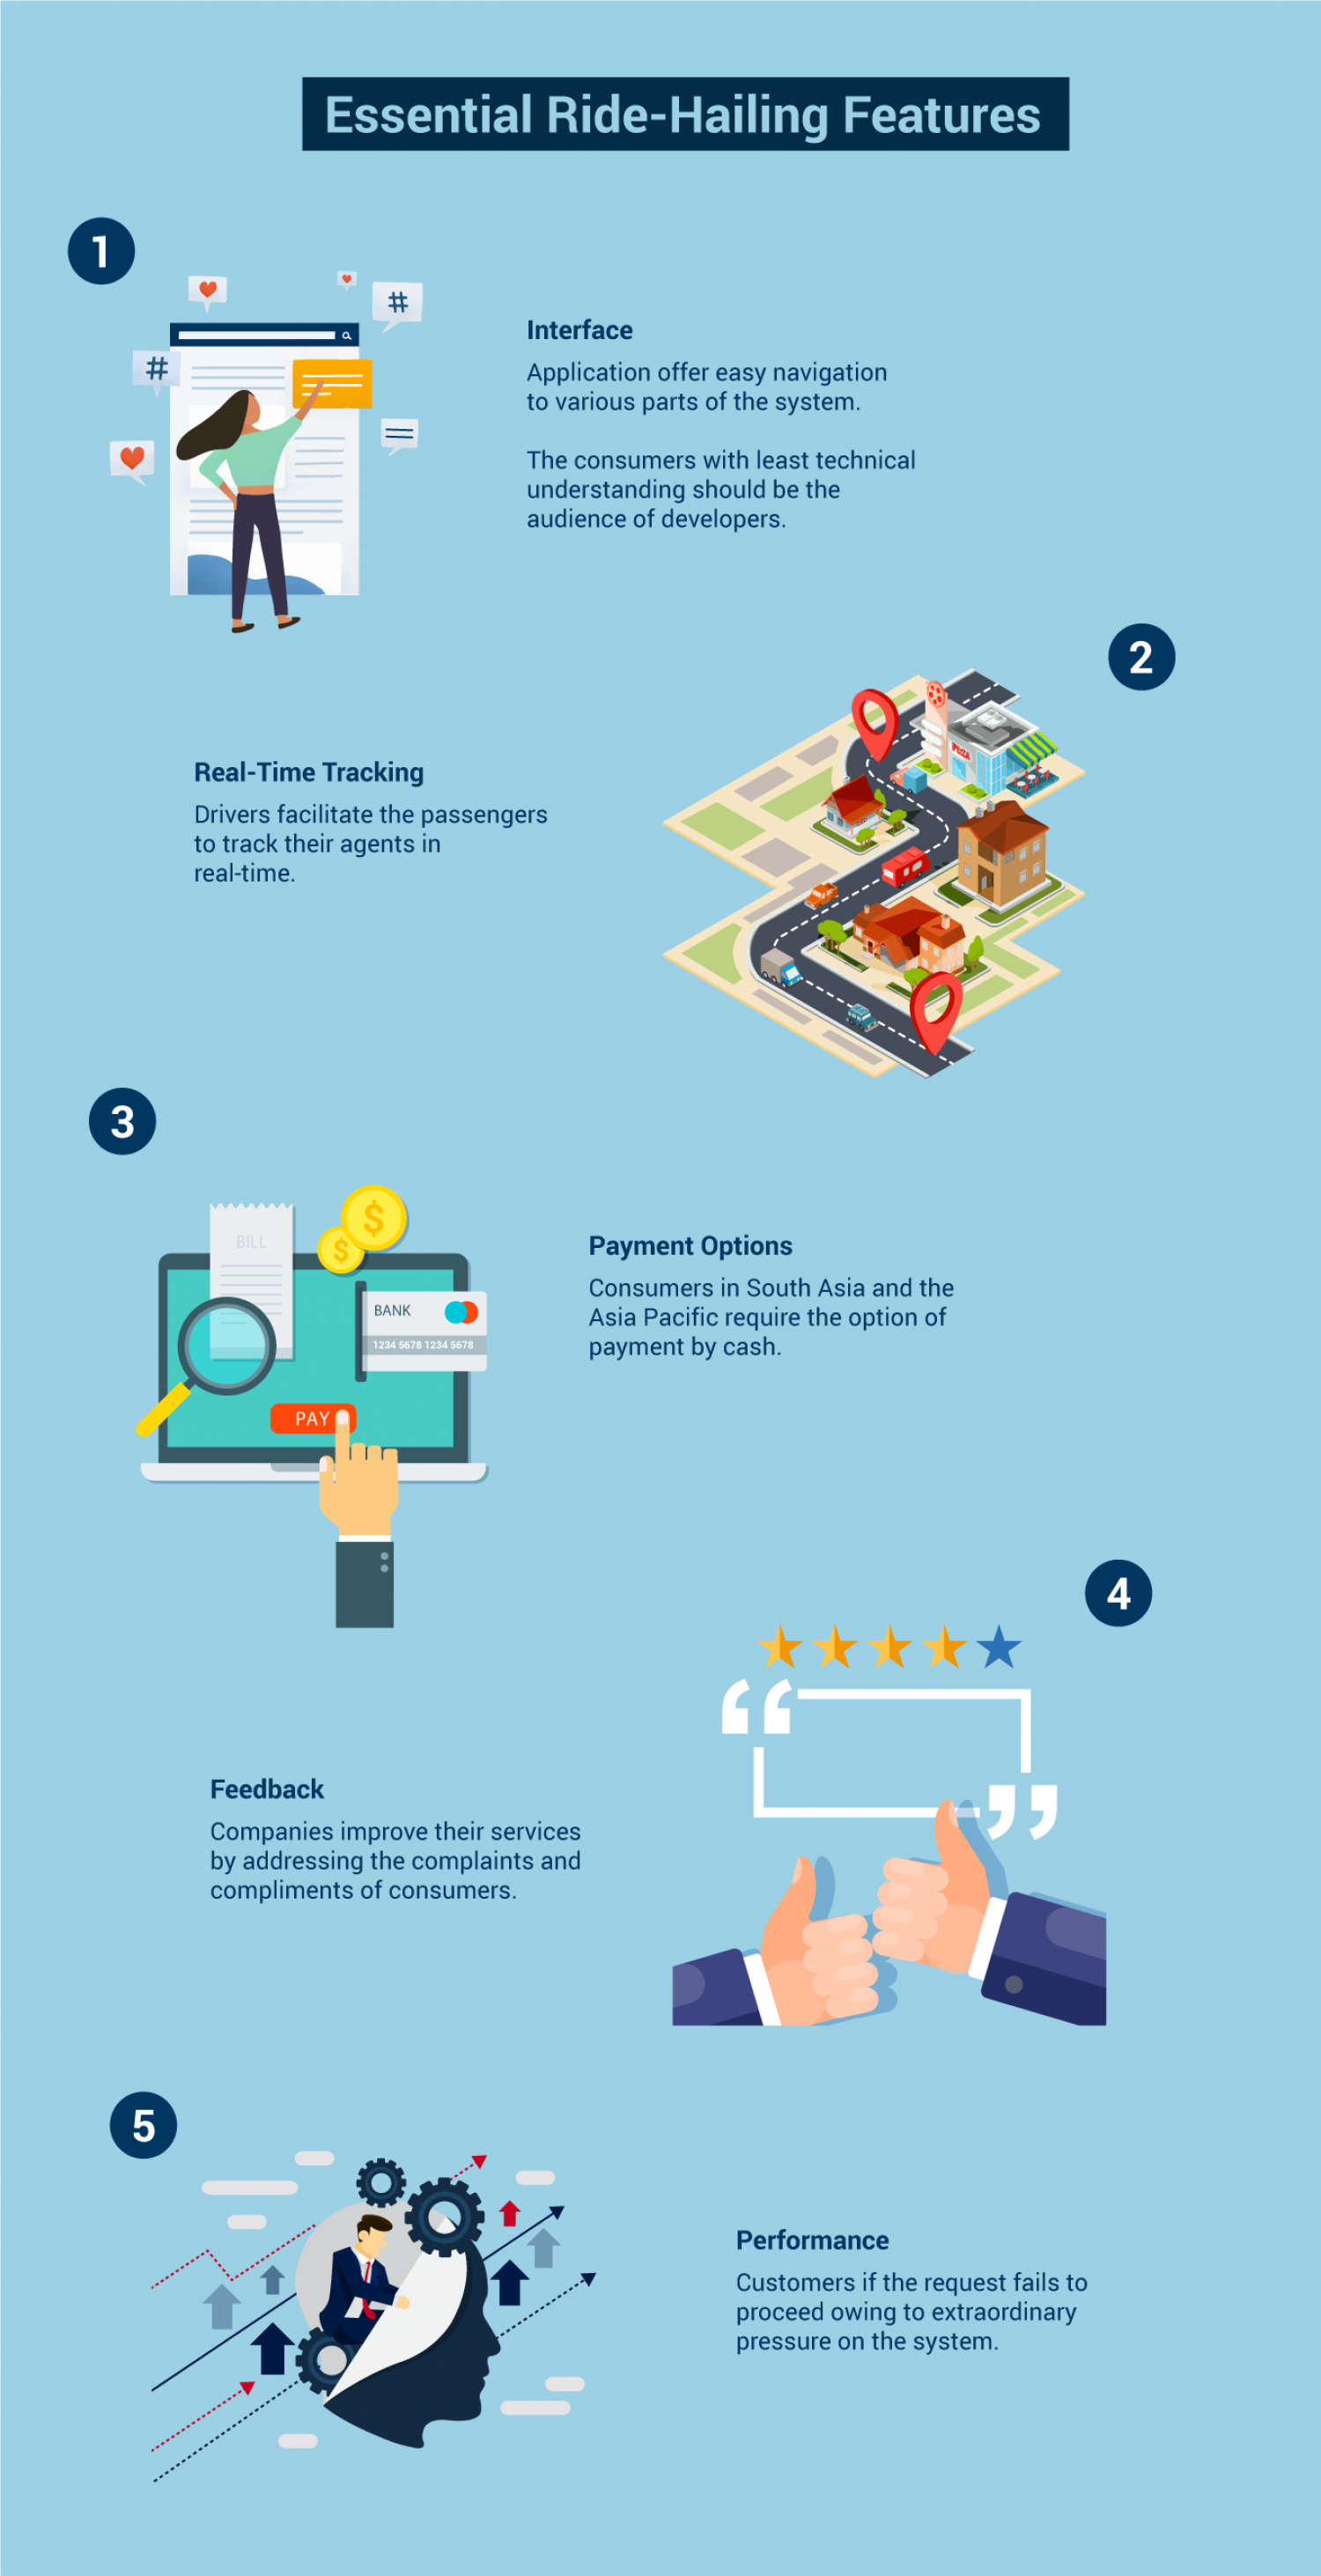 Top 5 Essential Ride-hailing Features Infographic